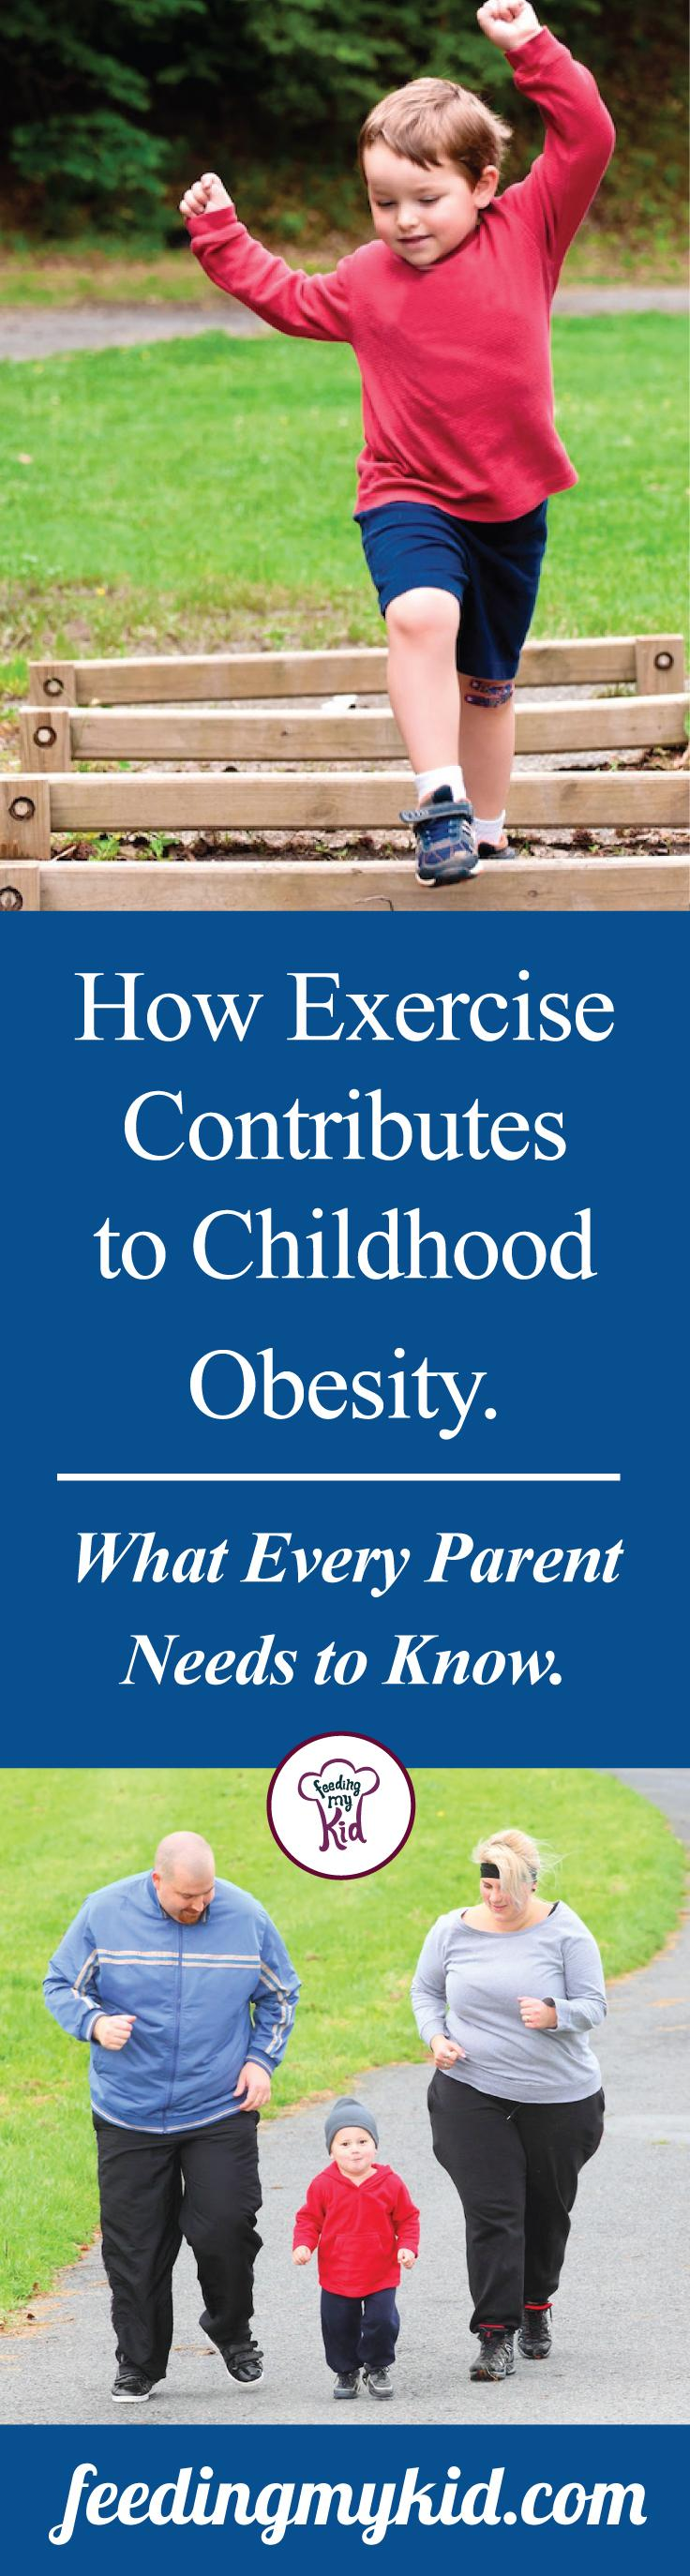 How Exercise Contributes to Childhood Obesity - Life—it's a balance. Fitness and health is a balance.The first step to solving the overweight issue in America is to emphasis diet, nutrition and creating a healthy lifestyle at home with your children. To be healthy you need to focus on a change in attitude. Find out more here.